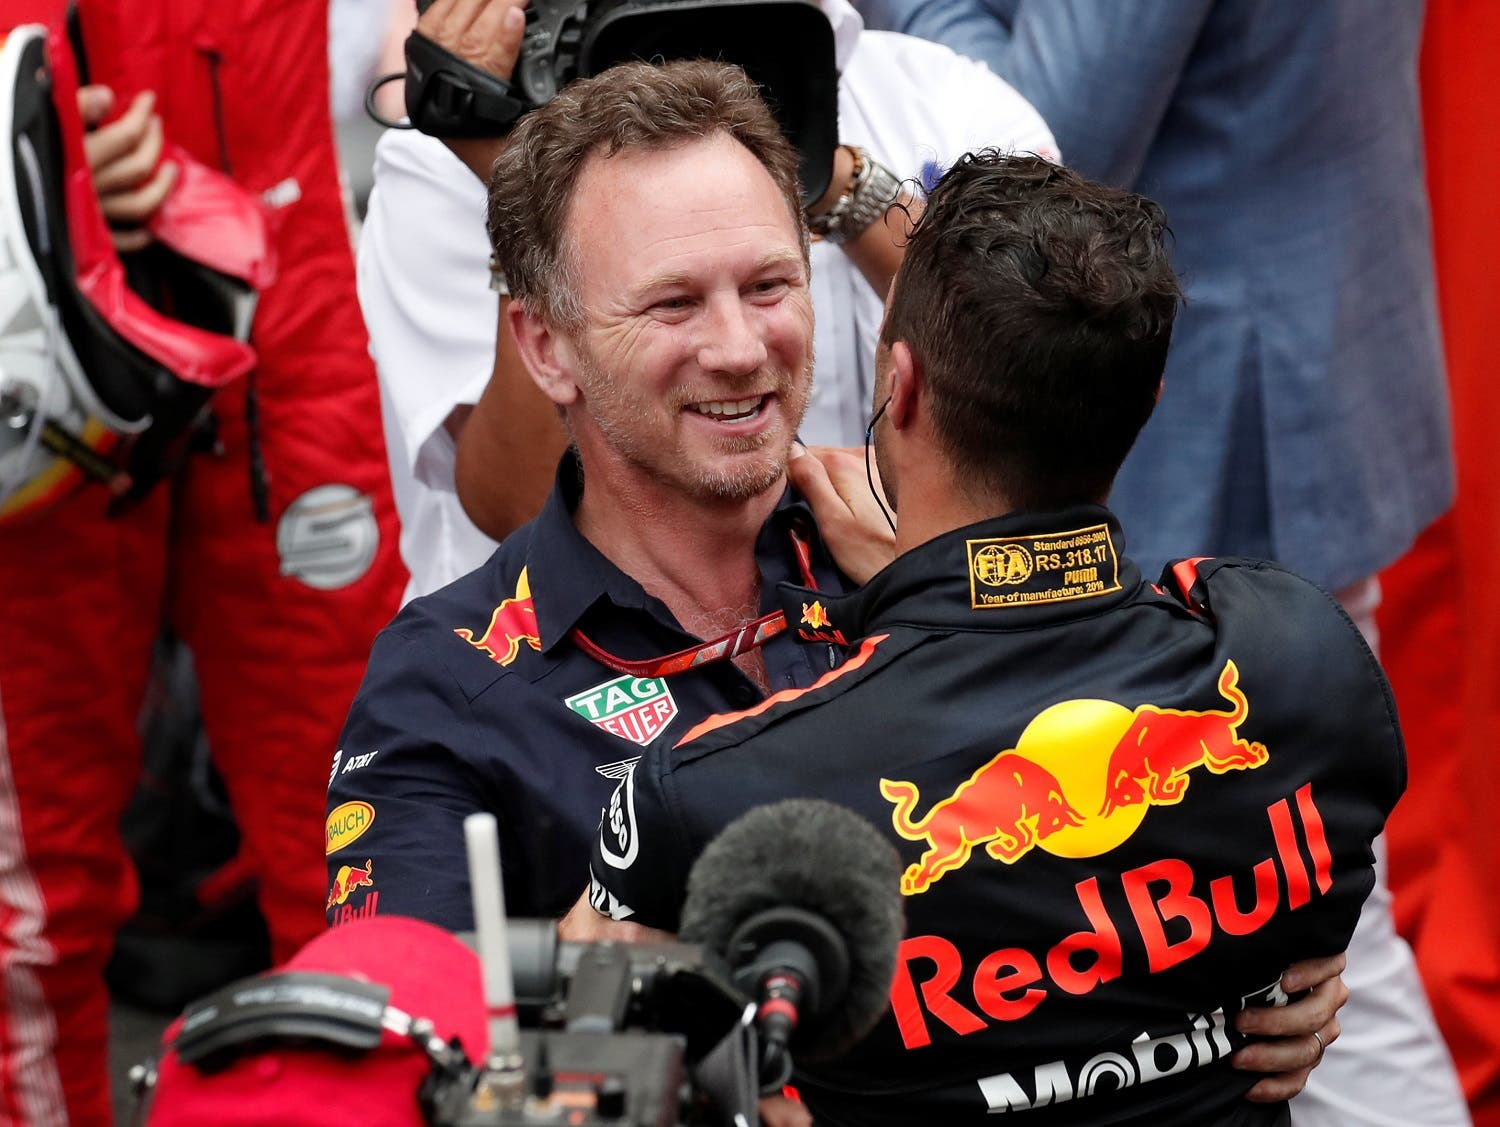 Red Bull's Daniel Ricciardo celebrates winning the race with Red Bull Team Principal Christian Horner (Reuters)